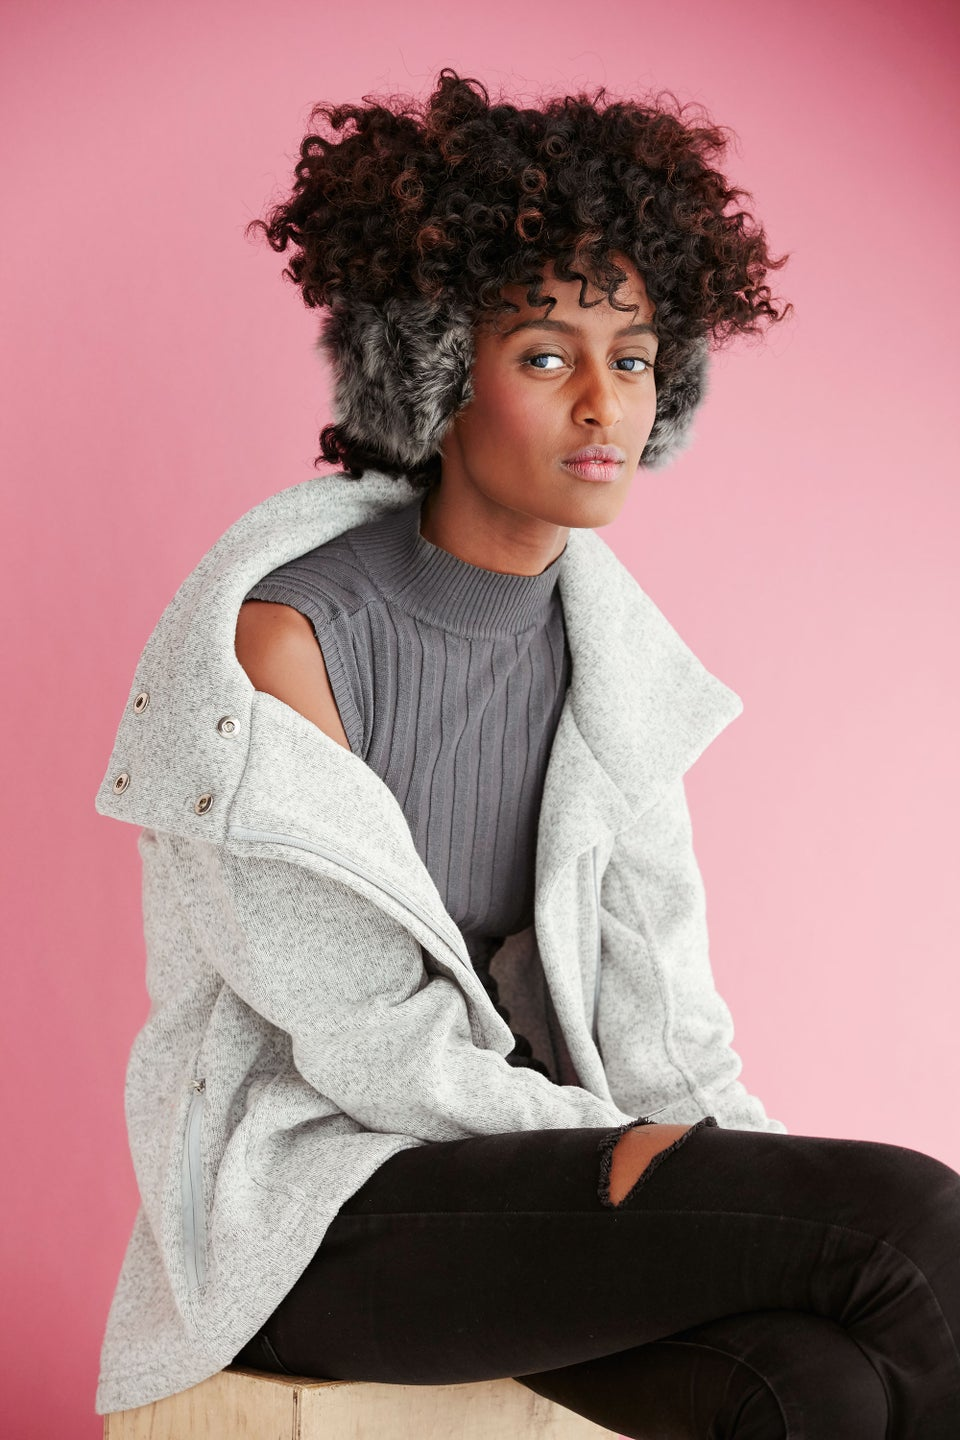 4 Ways To Style Hair Under Hats and Other Winter Accessories